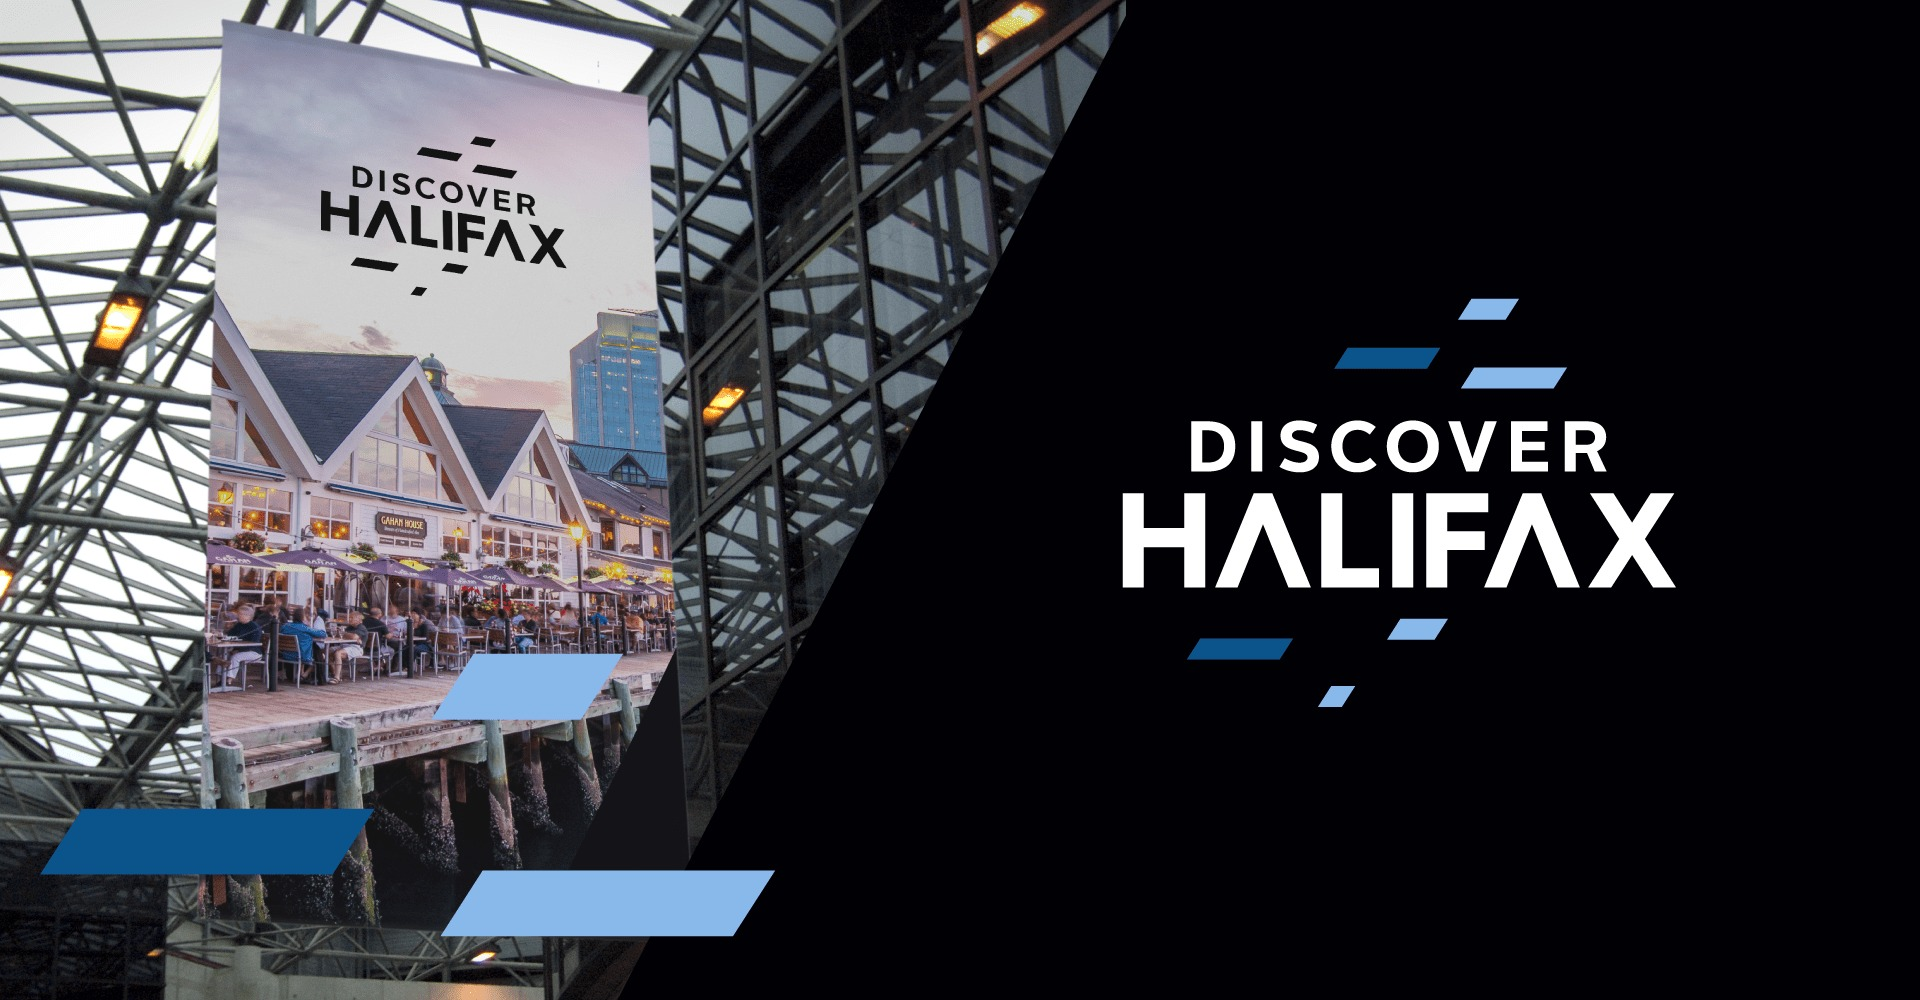 Dicover Halifax Logo and Print Advertisements